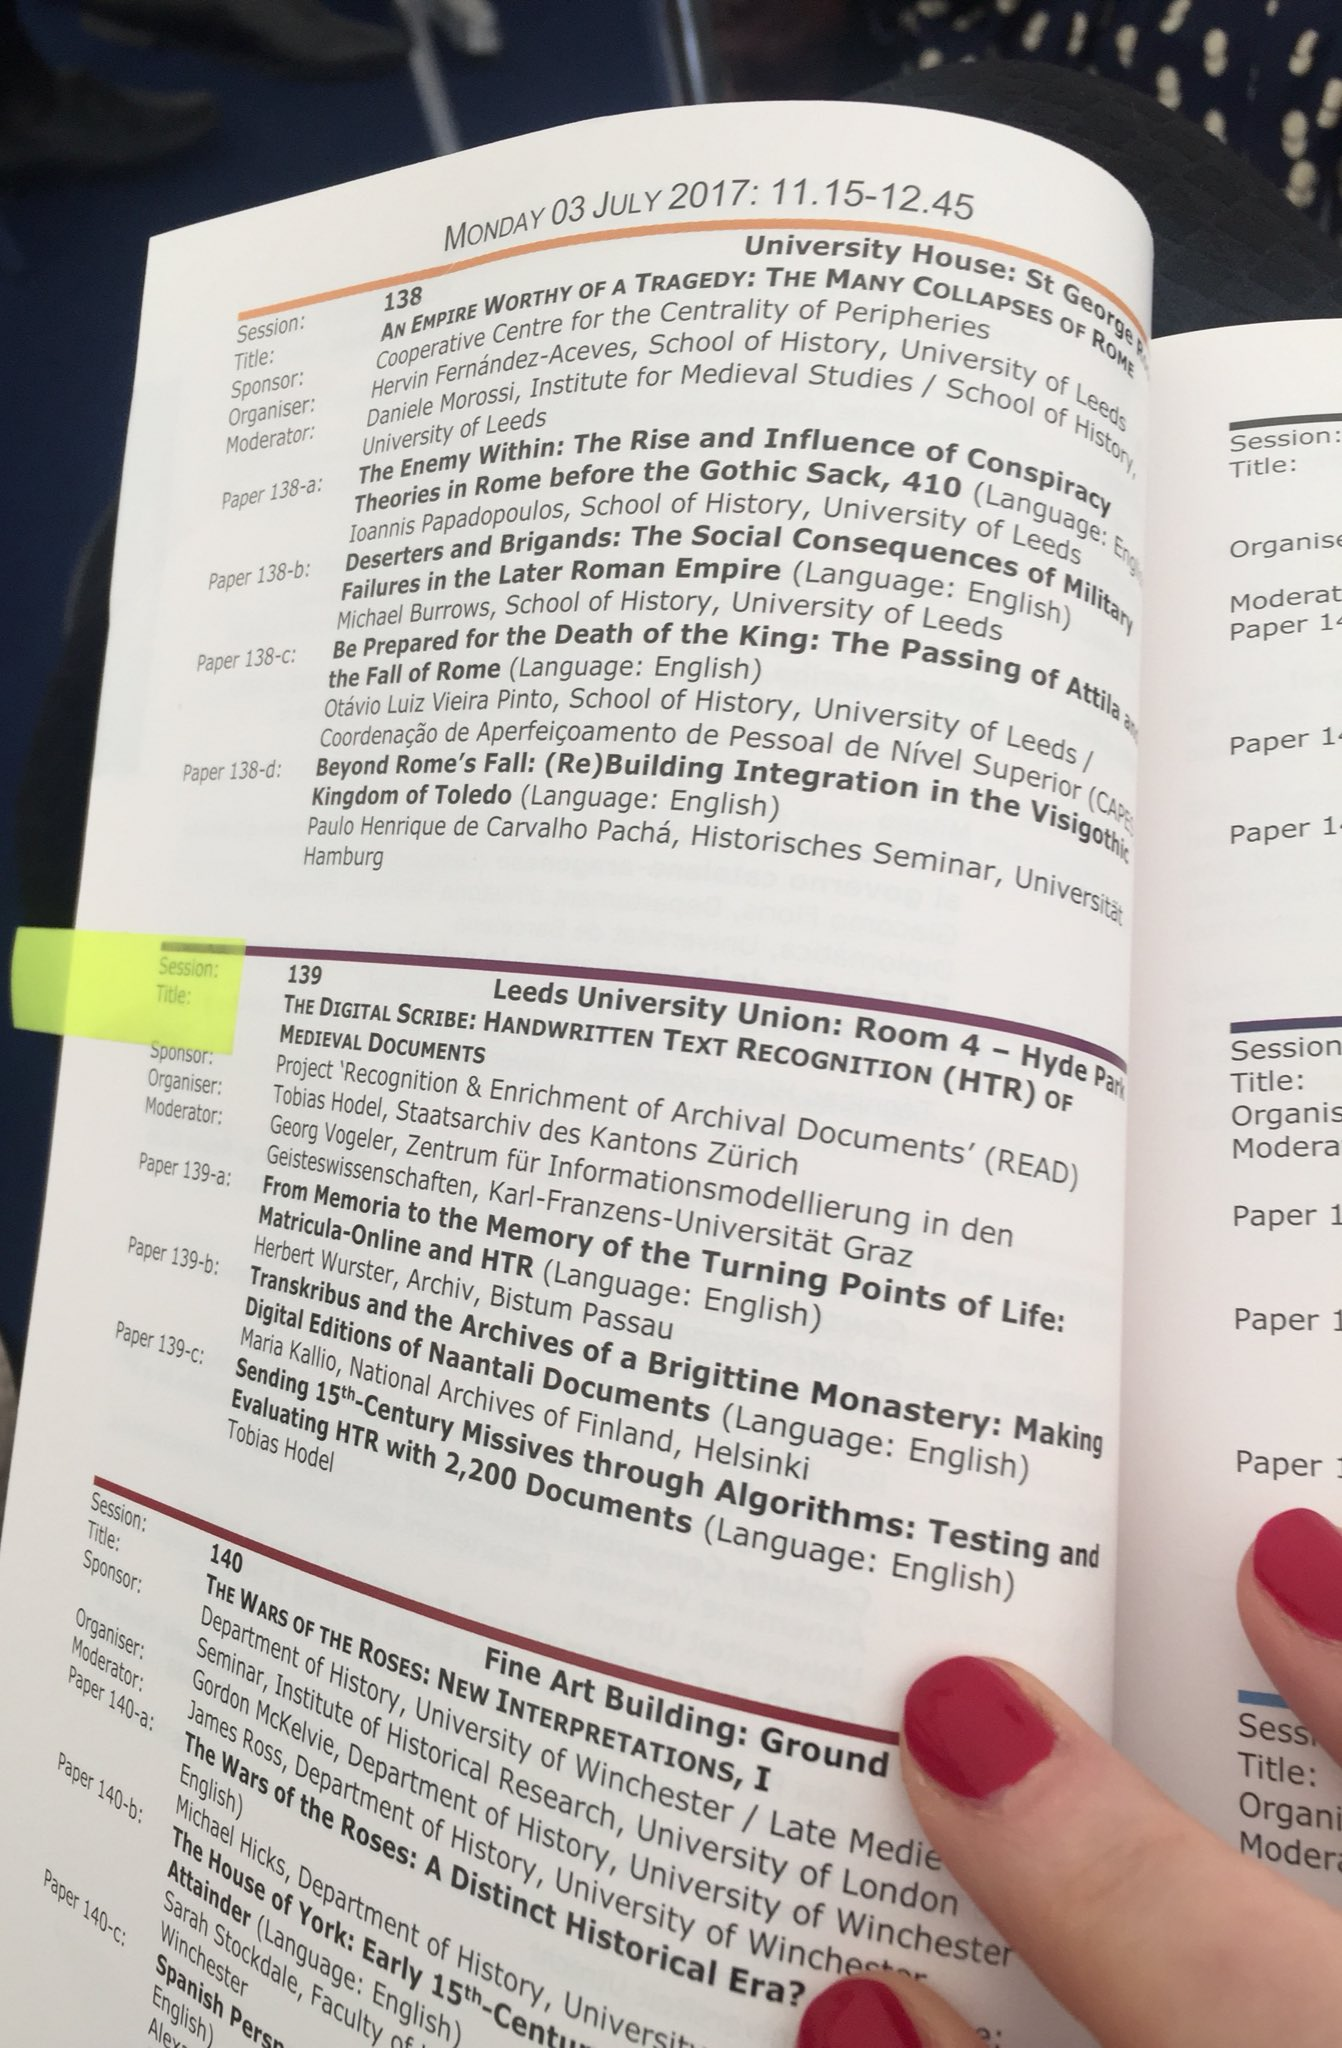 Looking forward to chairing #s139 'The #Digital #Scribe: Handwritten Text Recognition (#HTR) of #Medieval Documents' this morning! #IMC2017 https://t.co/AiTTfHz0Ld